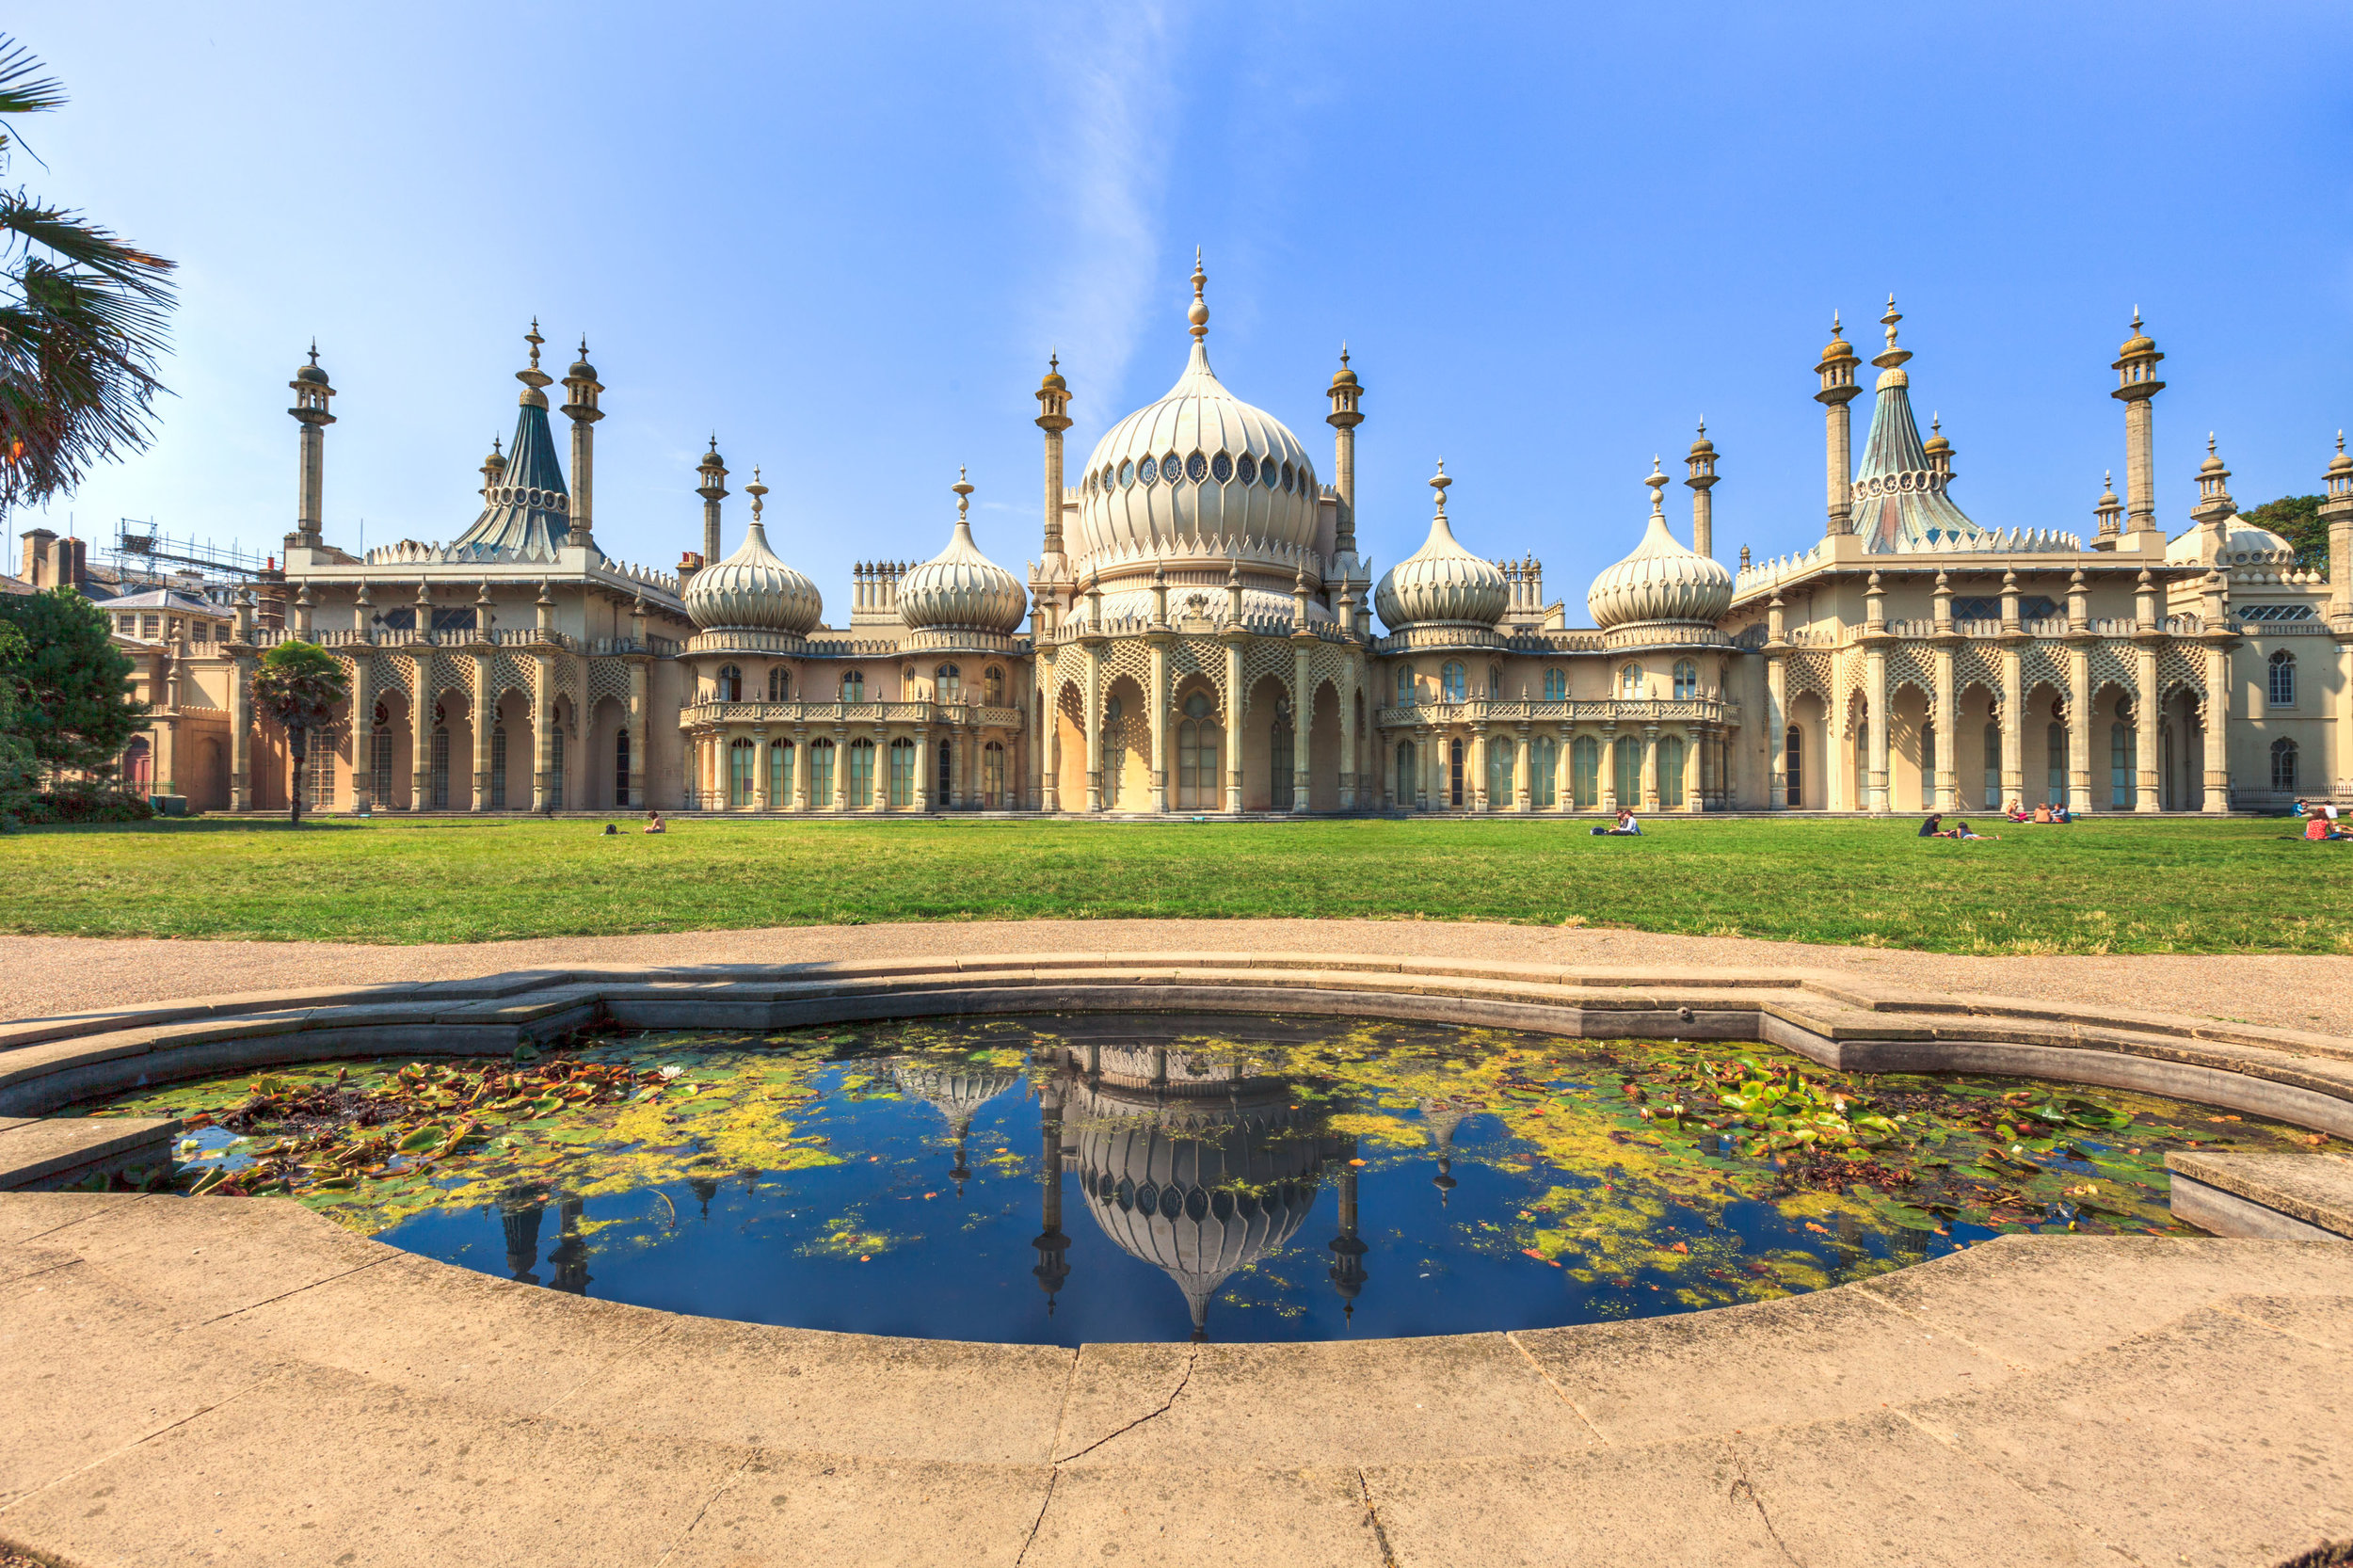 The_Royal_Pavilion_Brighton_UK.jpg